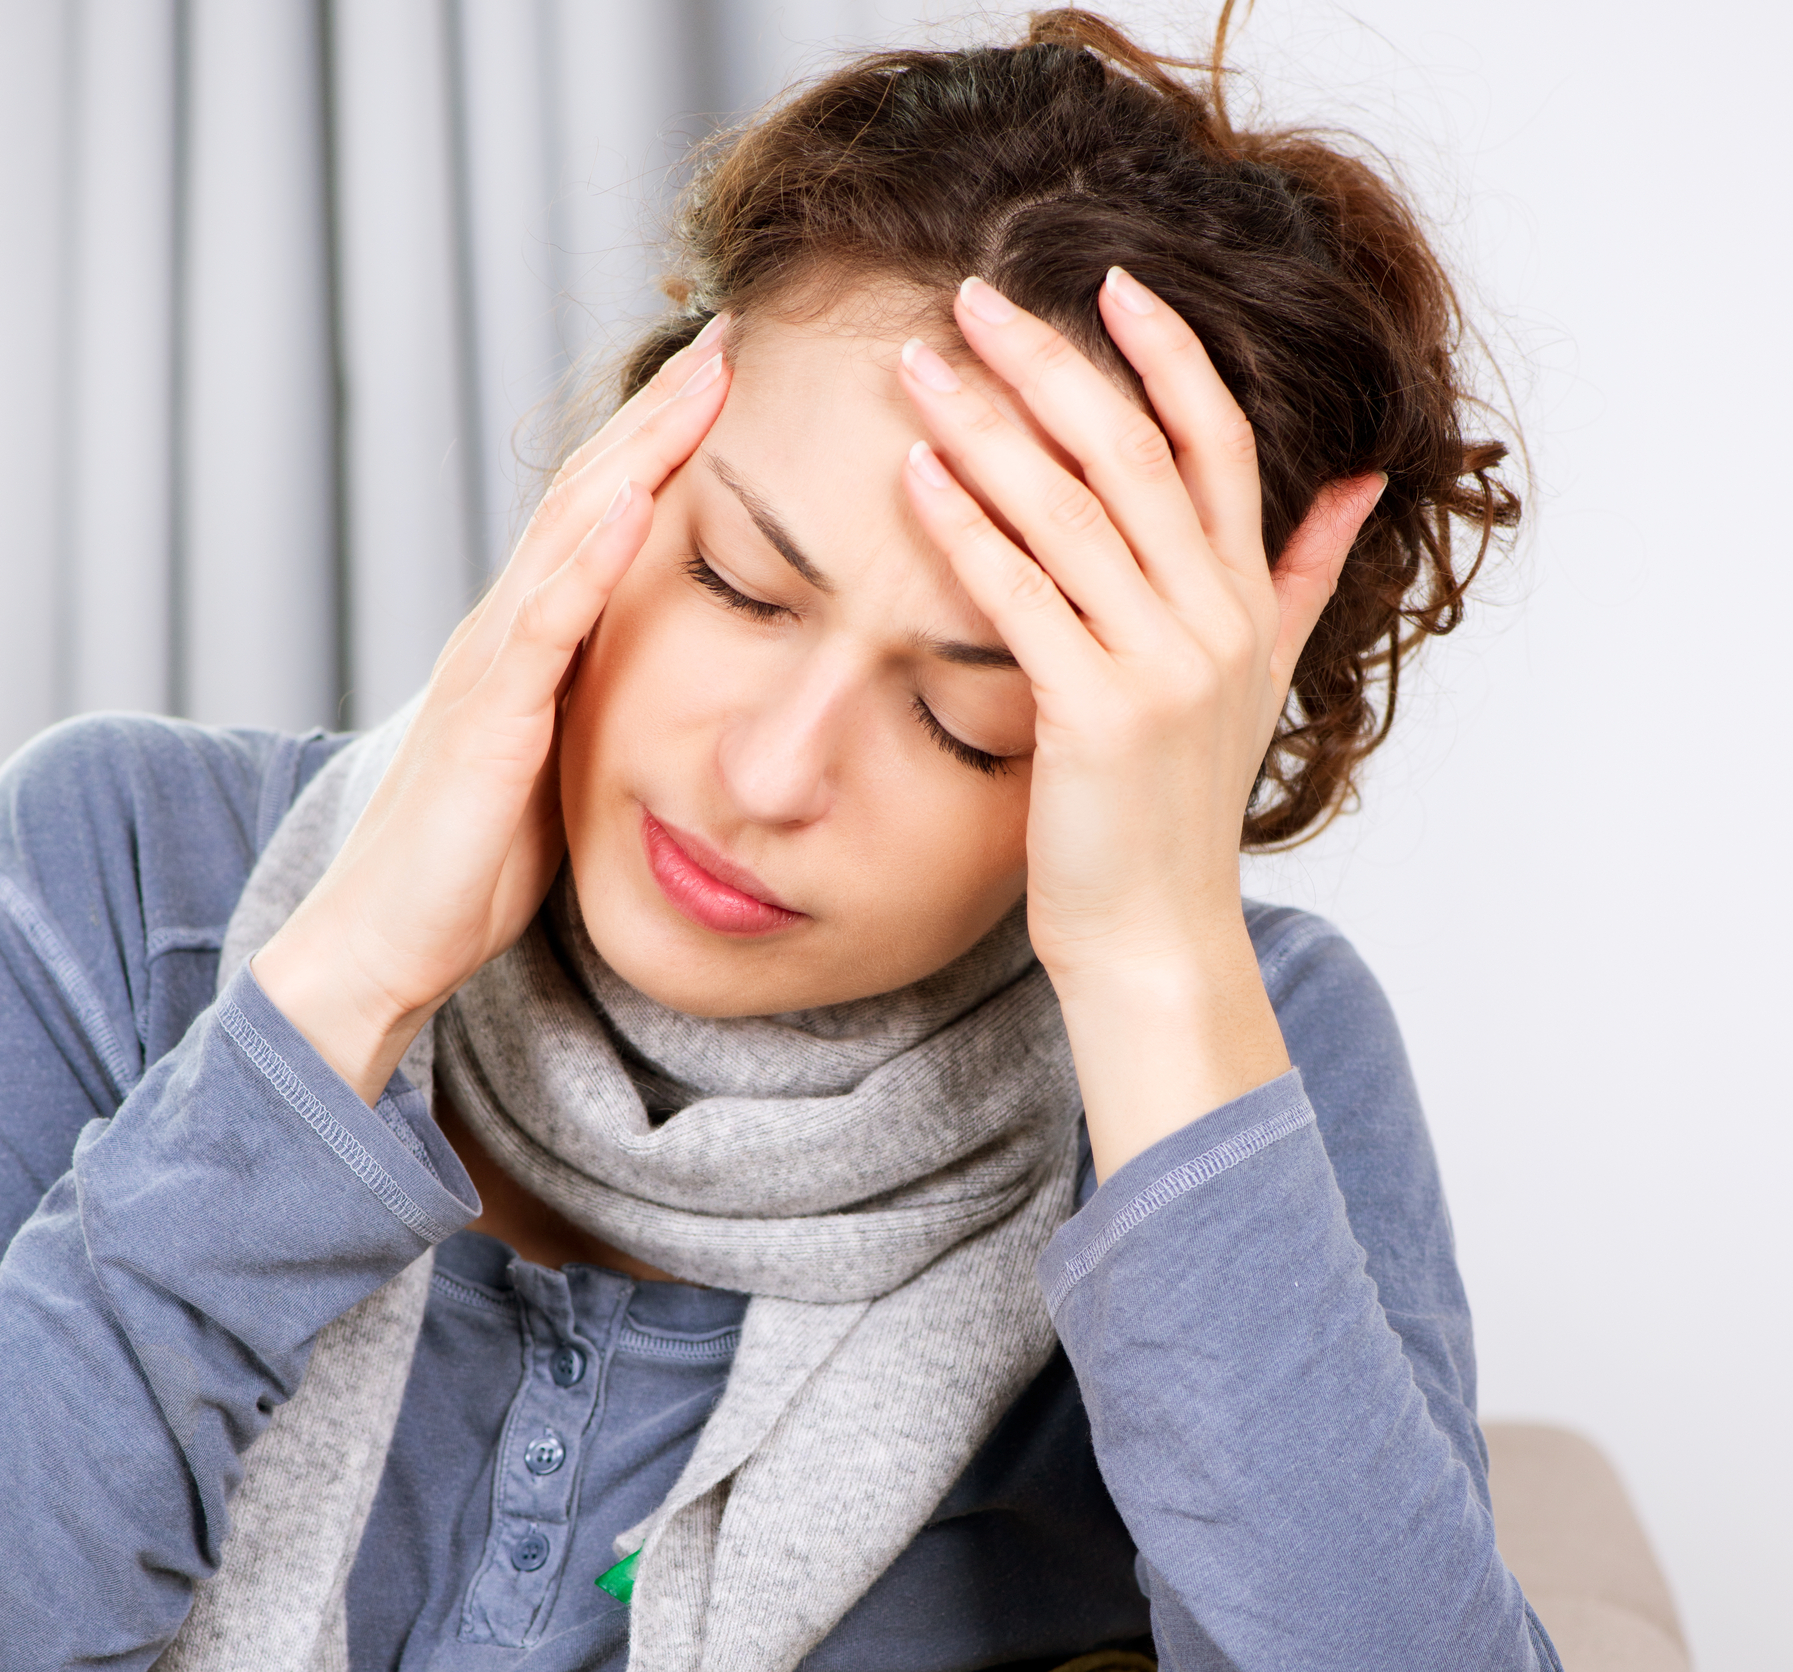 farmington-chiropractor-offers-drug-free-natural-migraine-relief